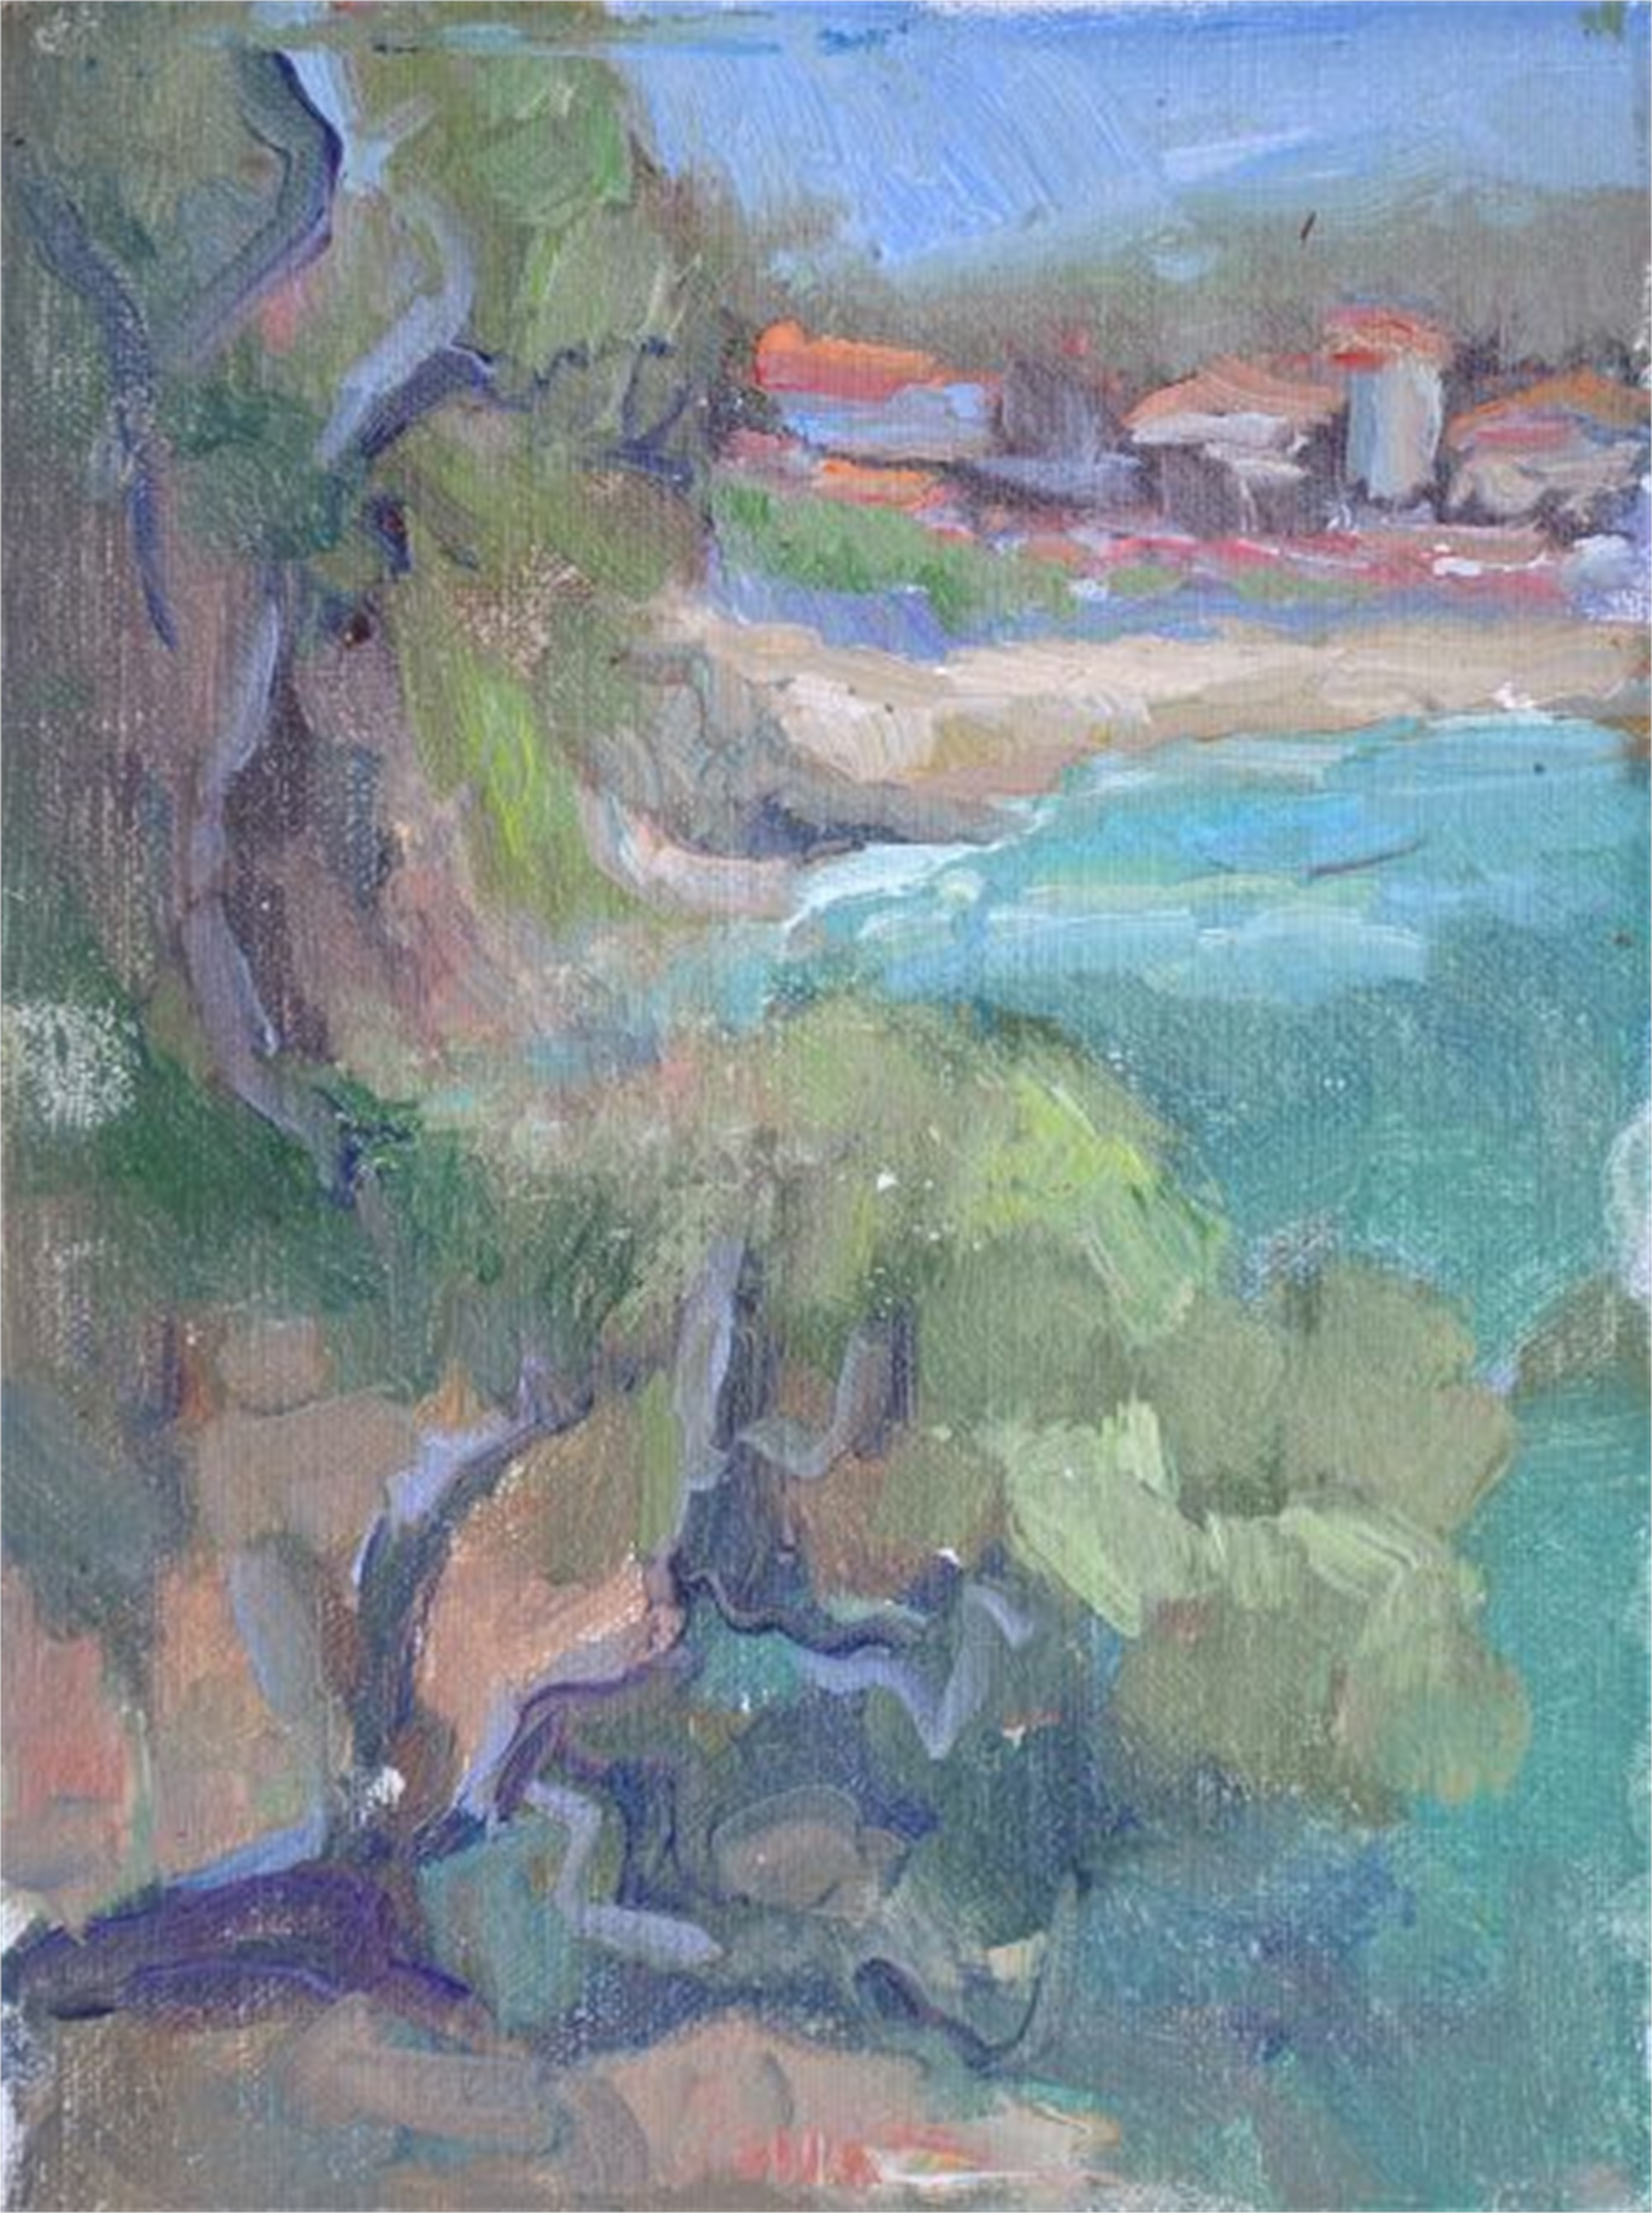 Winding Road by the Sea in Spain by Karen Hewitt Hagan